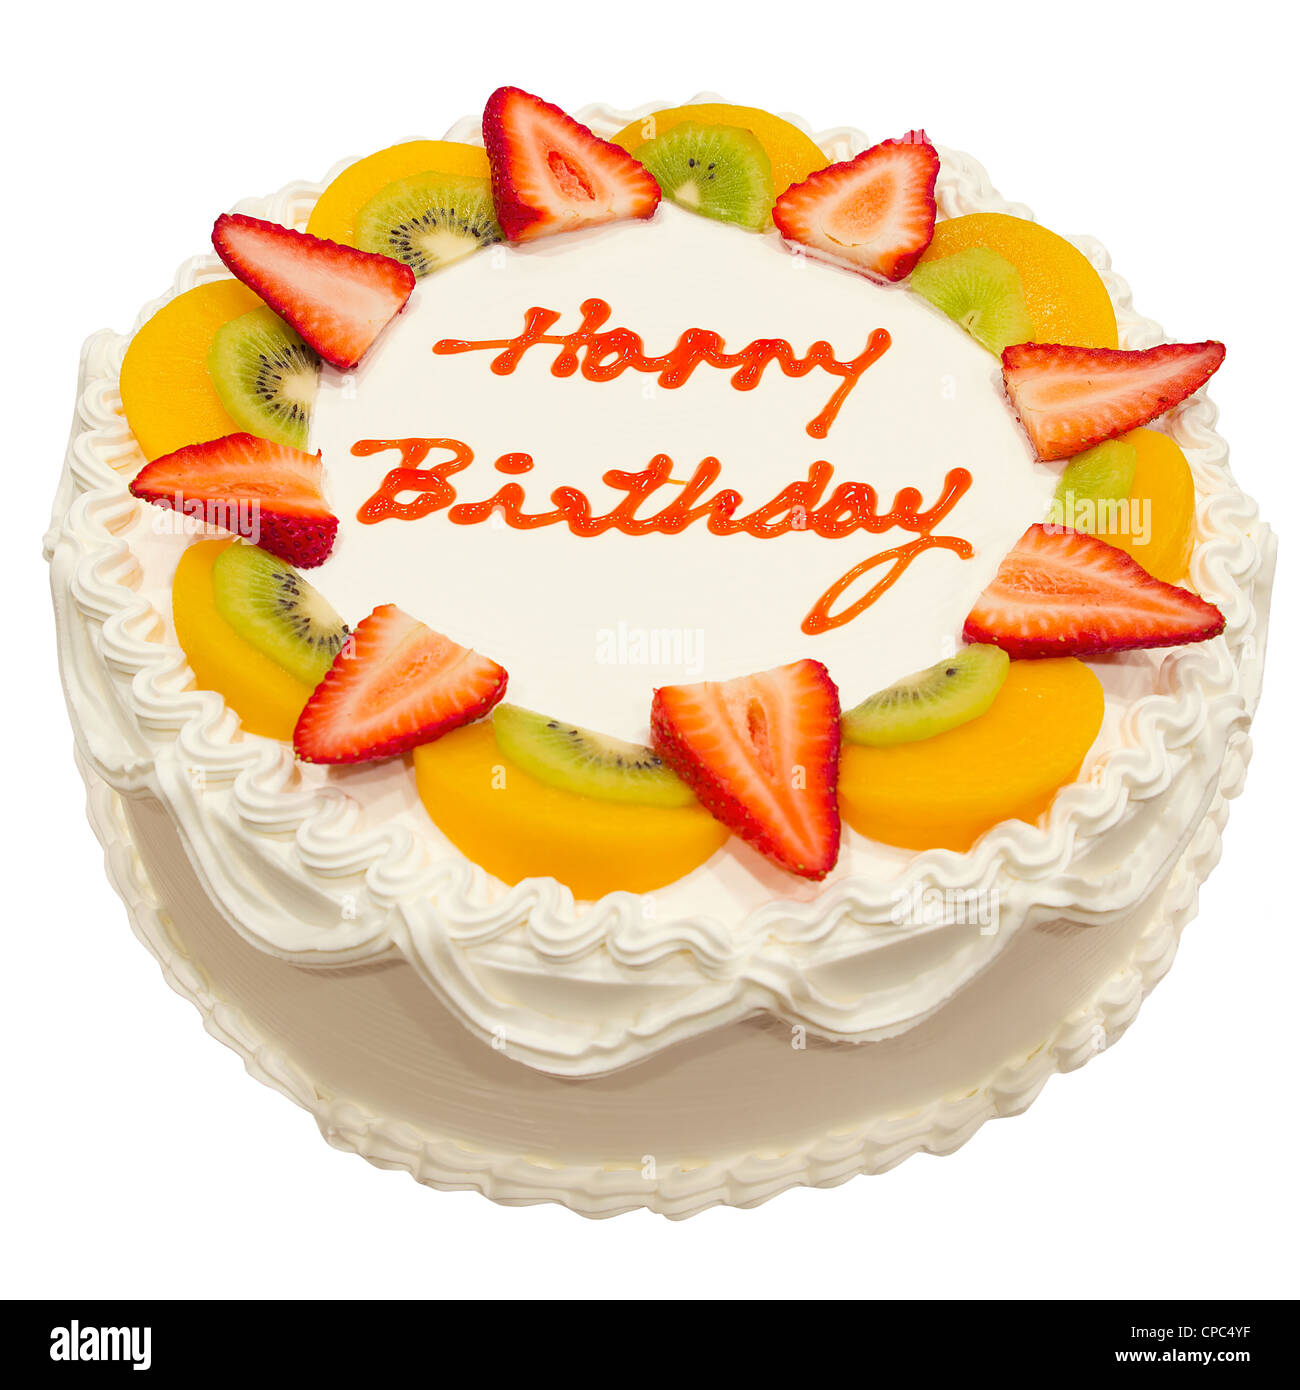 Happy Birthday Fresh Fruit Cake Isolated On White Background